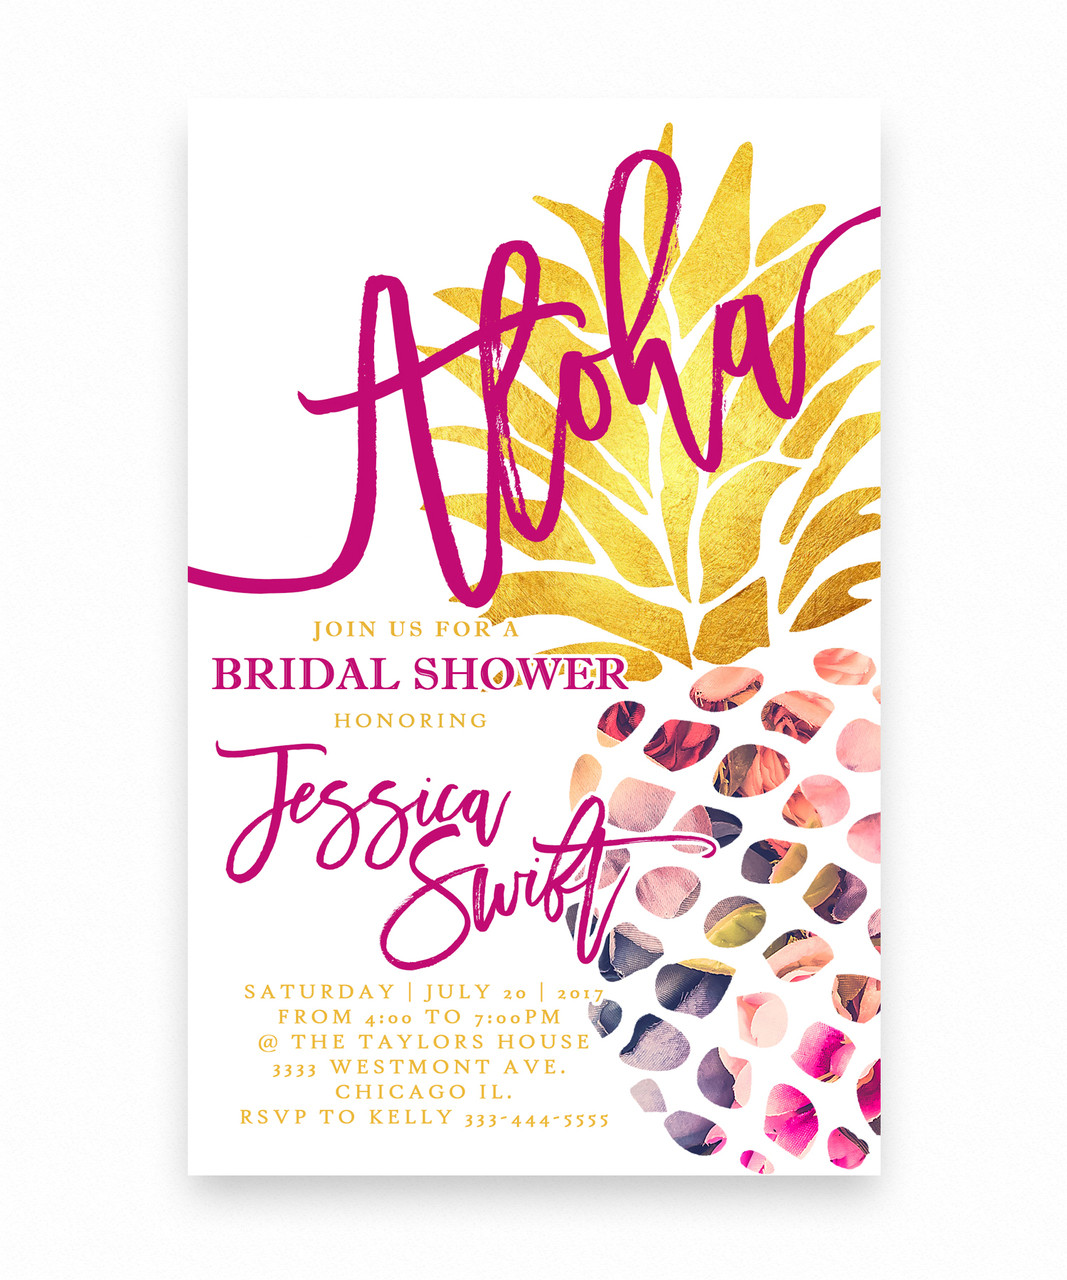 Luau bridal shower invitation aloha pineapple aloha bridal shower invitation summer pineapple filmwisefo